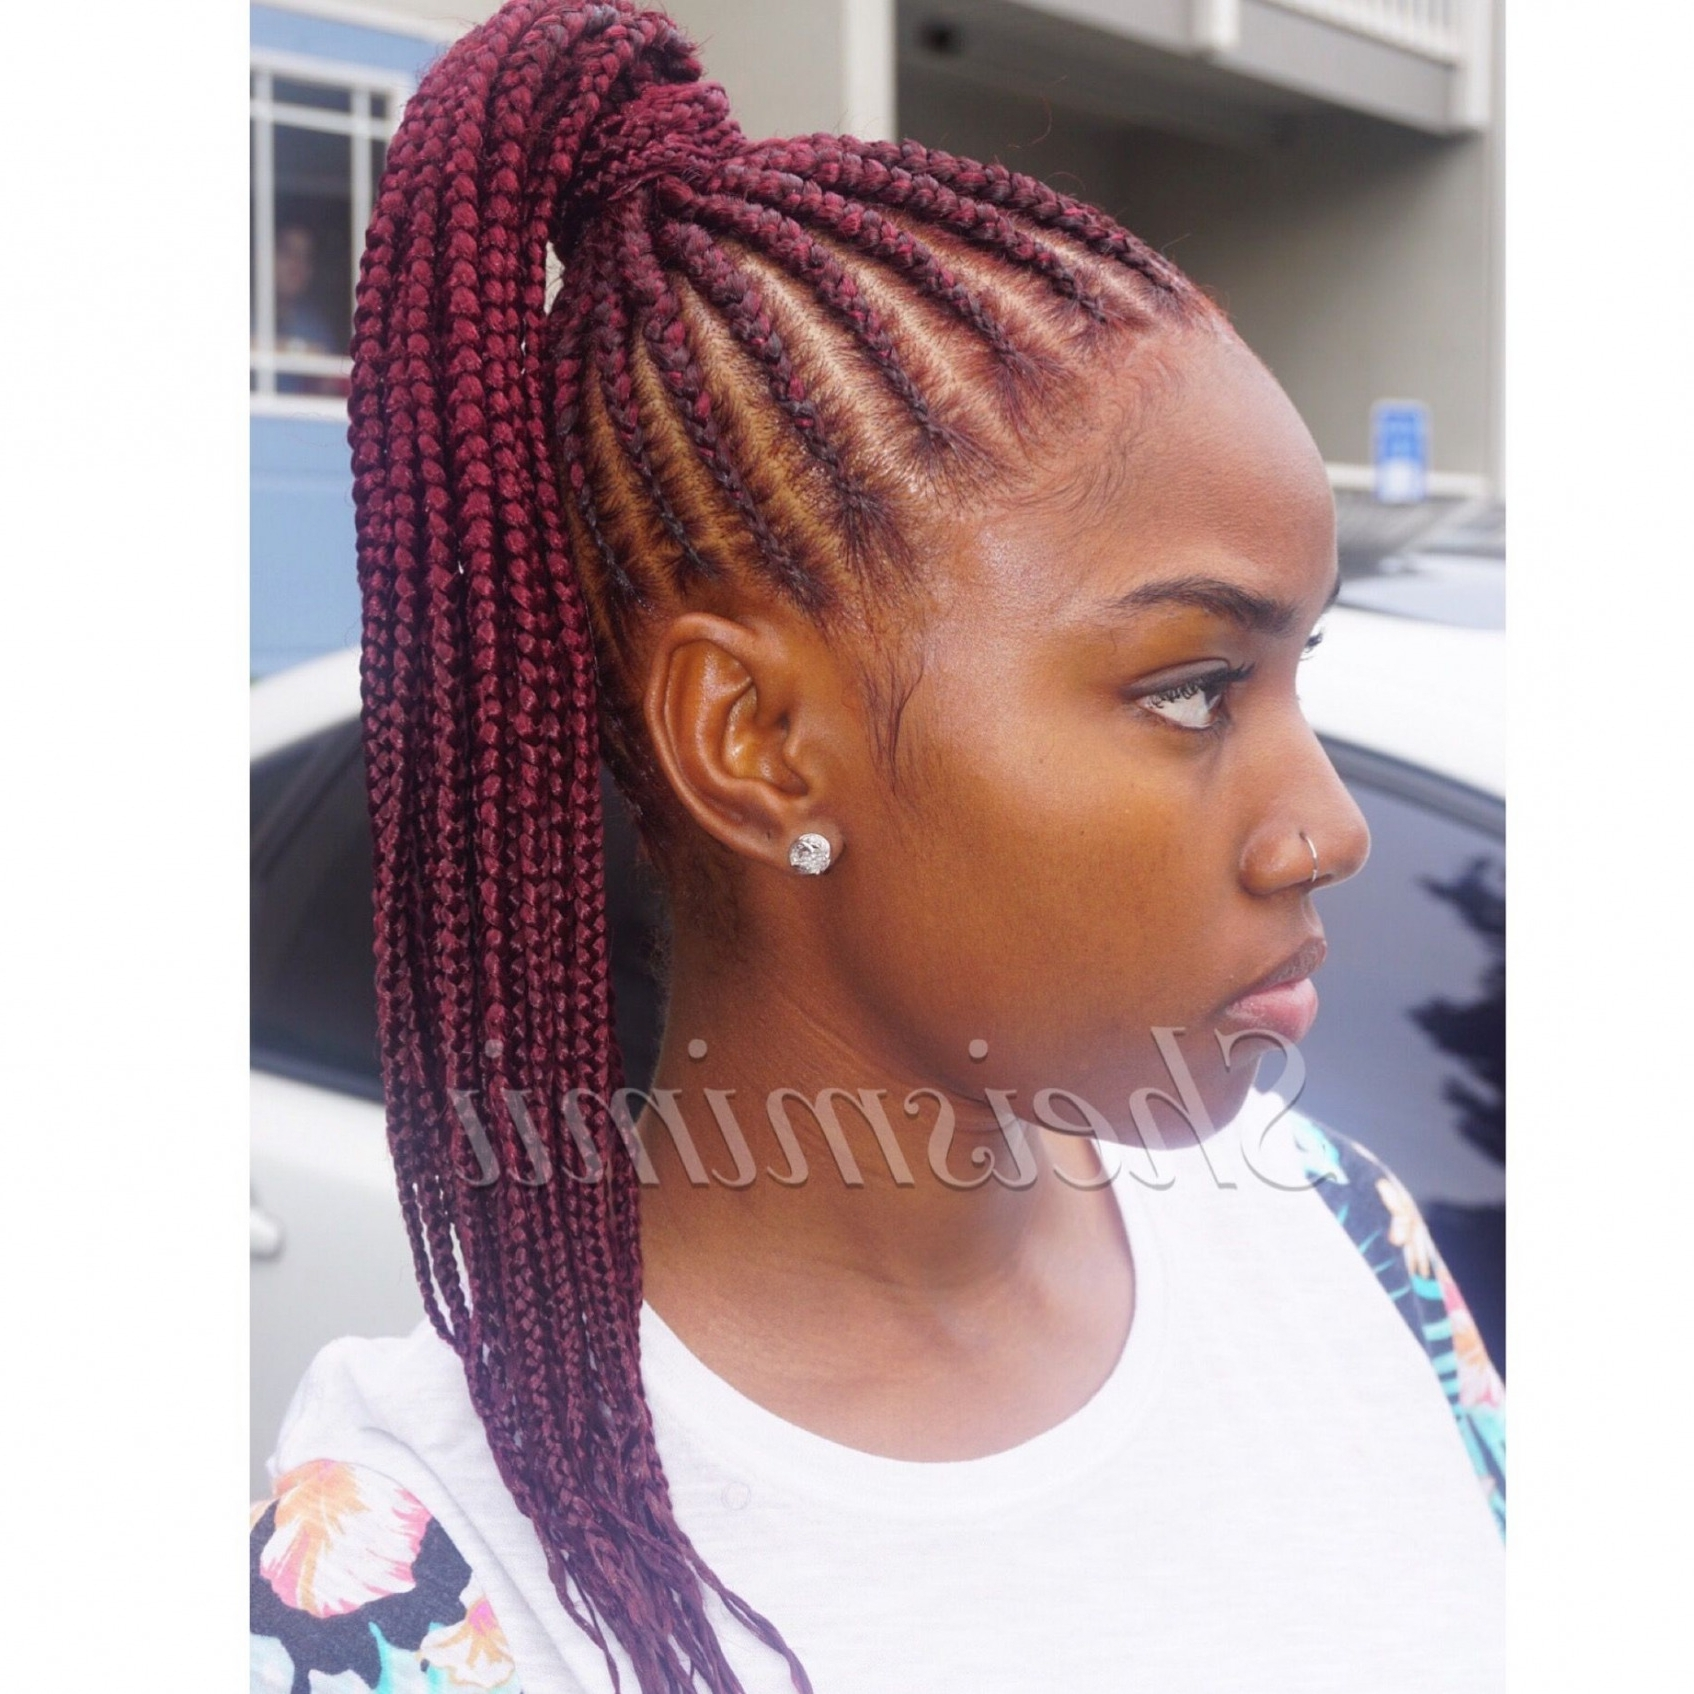 Straight Up Braids Hairstyles For Black Women 2018 – Orlandowhite Regarding Trendy Straight Up Cornrows Hairstyles (View 9 of 15)